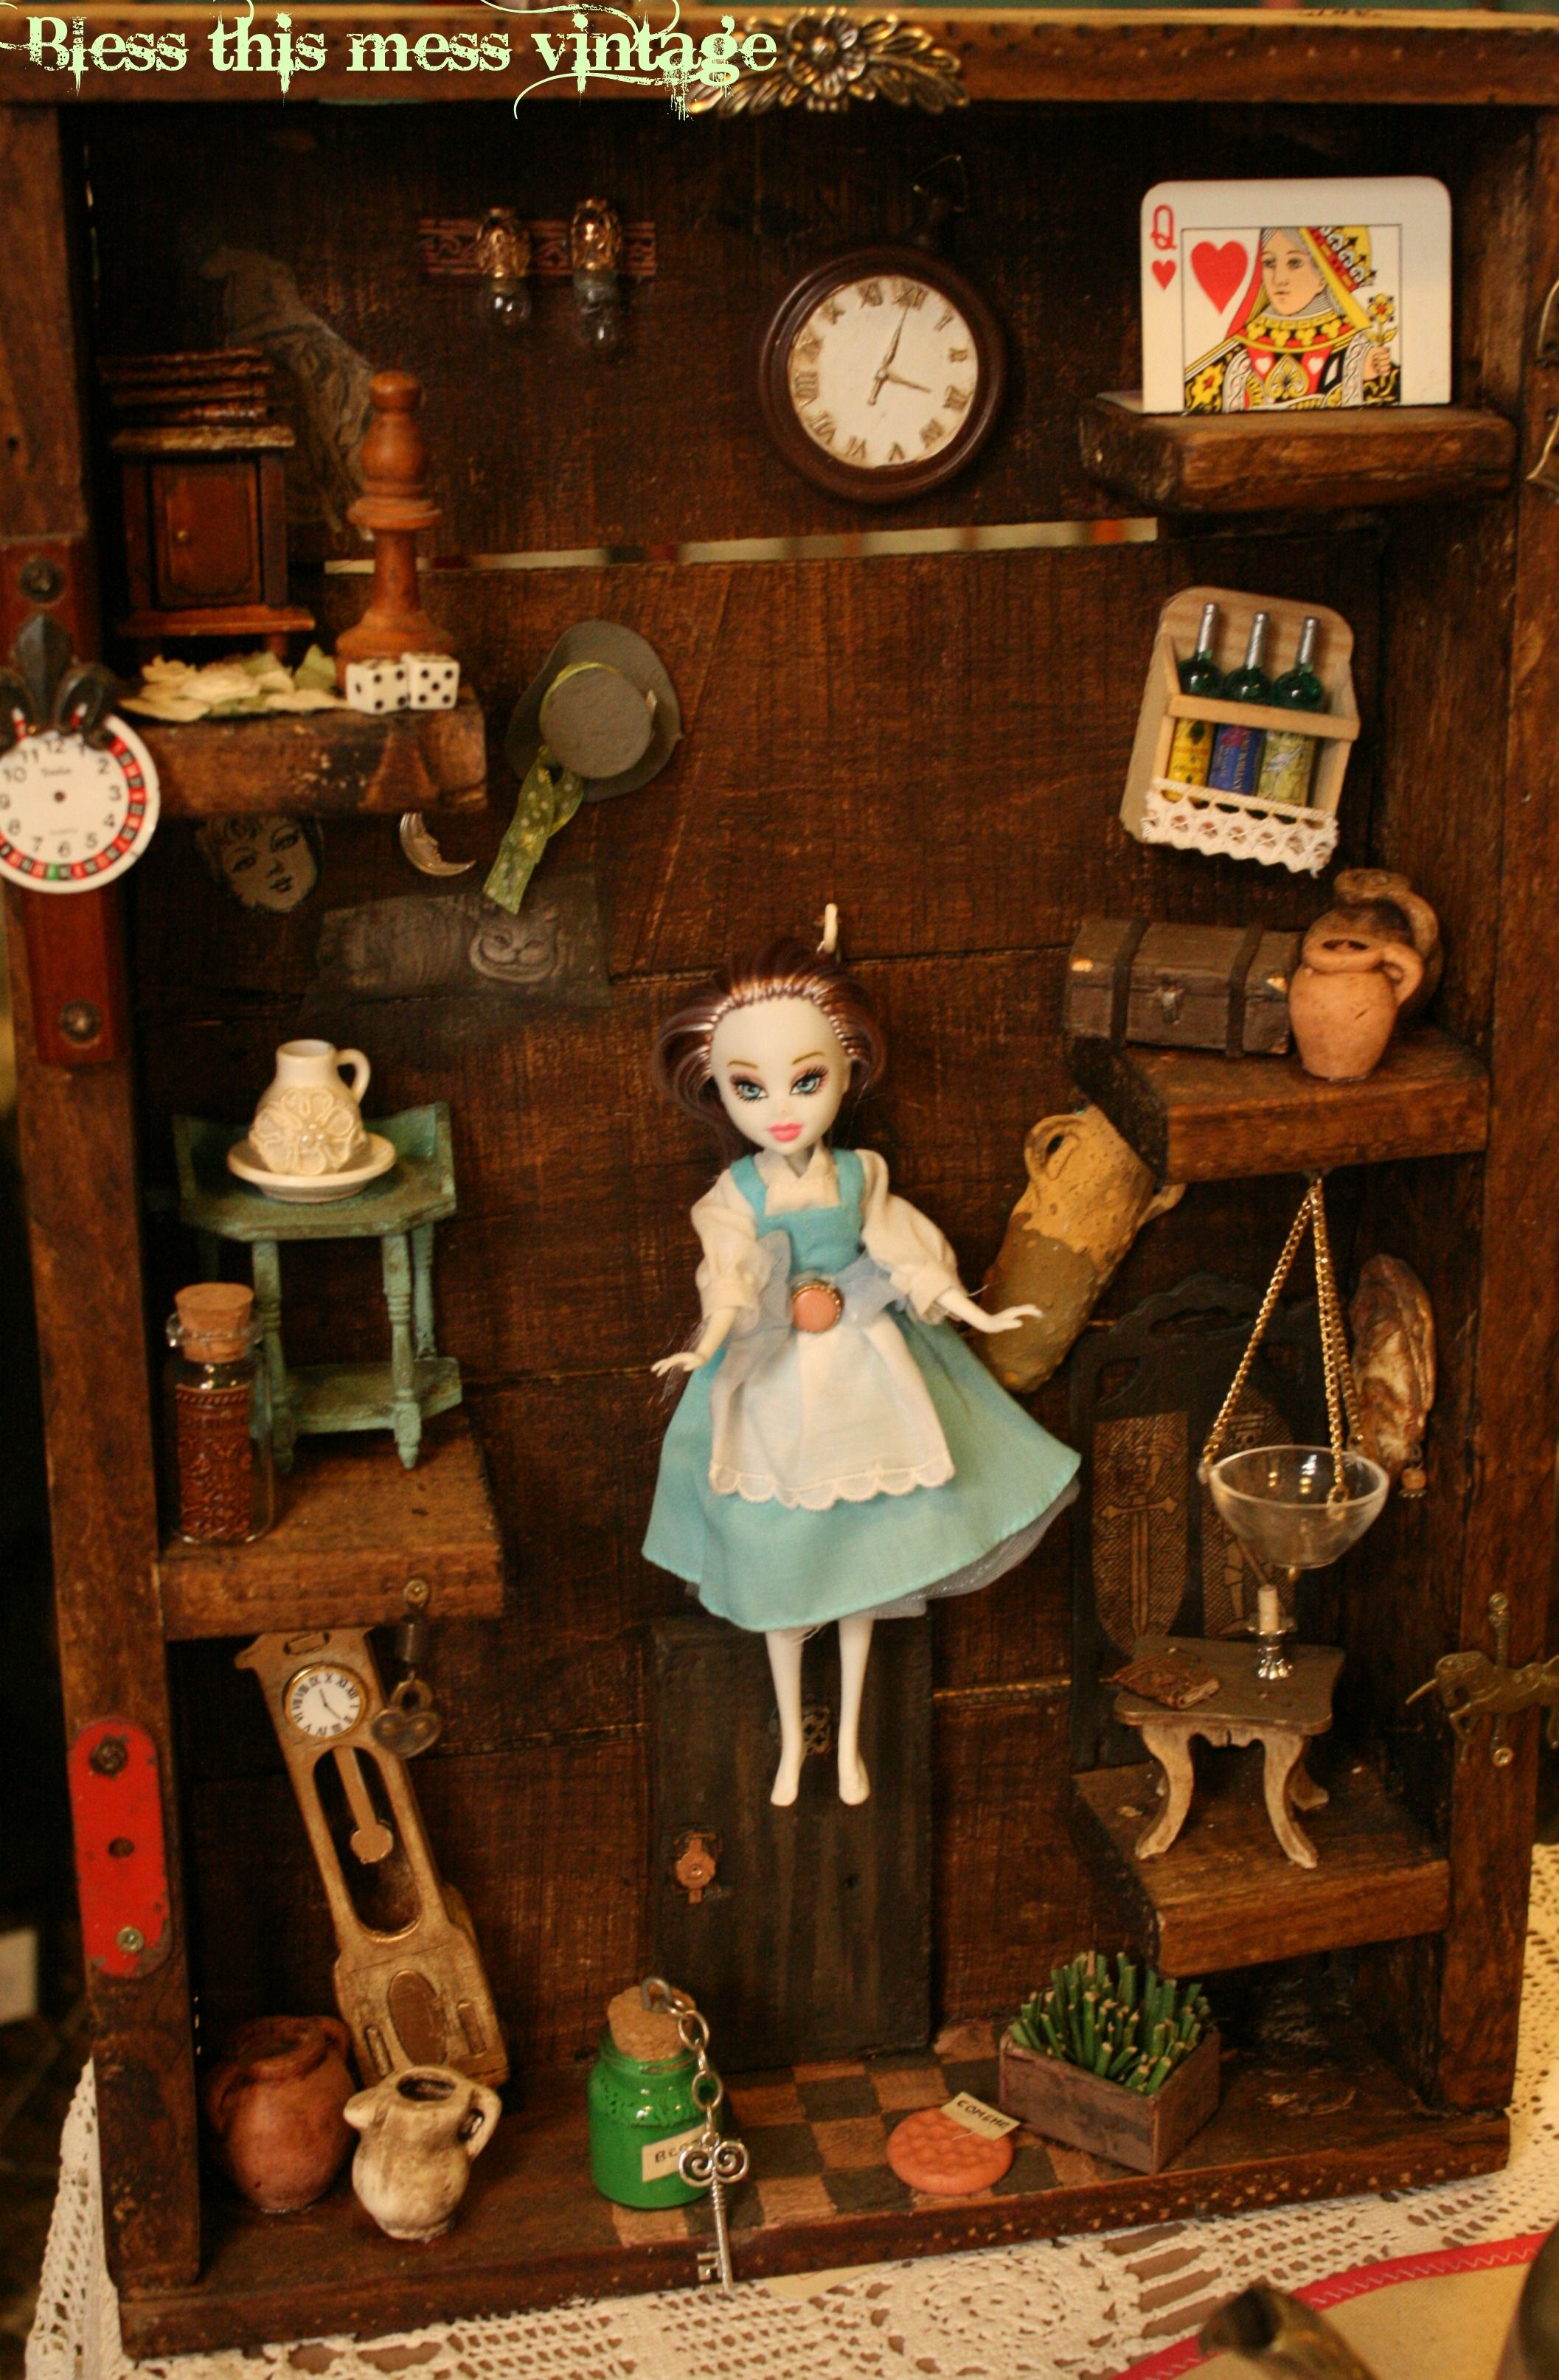 alice in Wonderland - assemblage art in a box - vintage-like collection of artefacts inspired by Alice in Wonderland